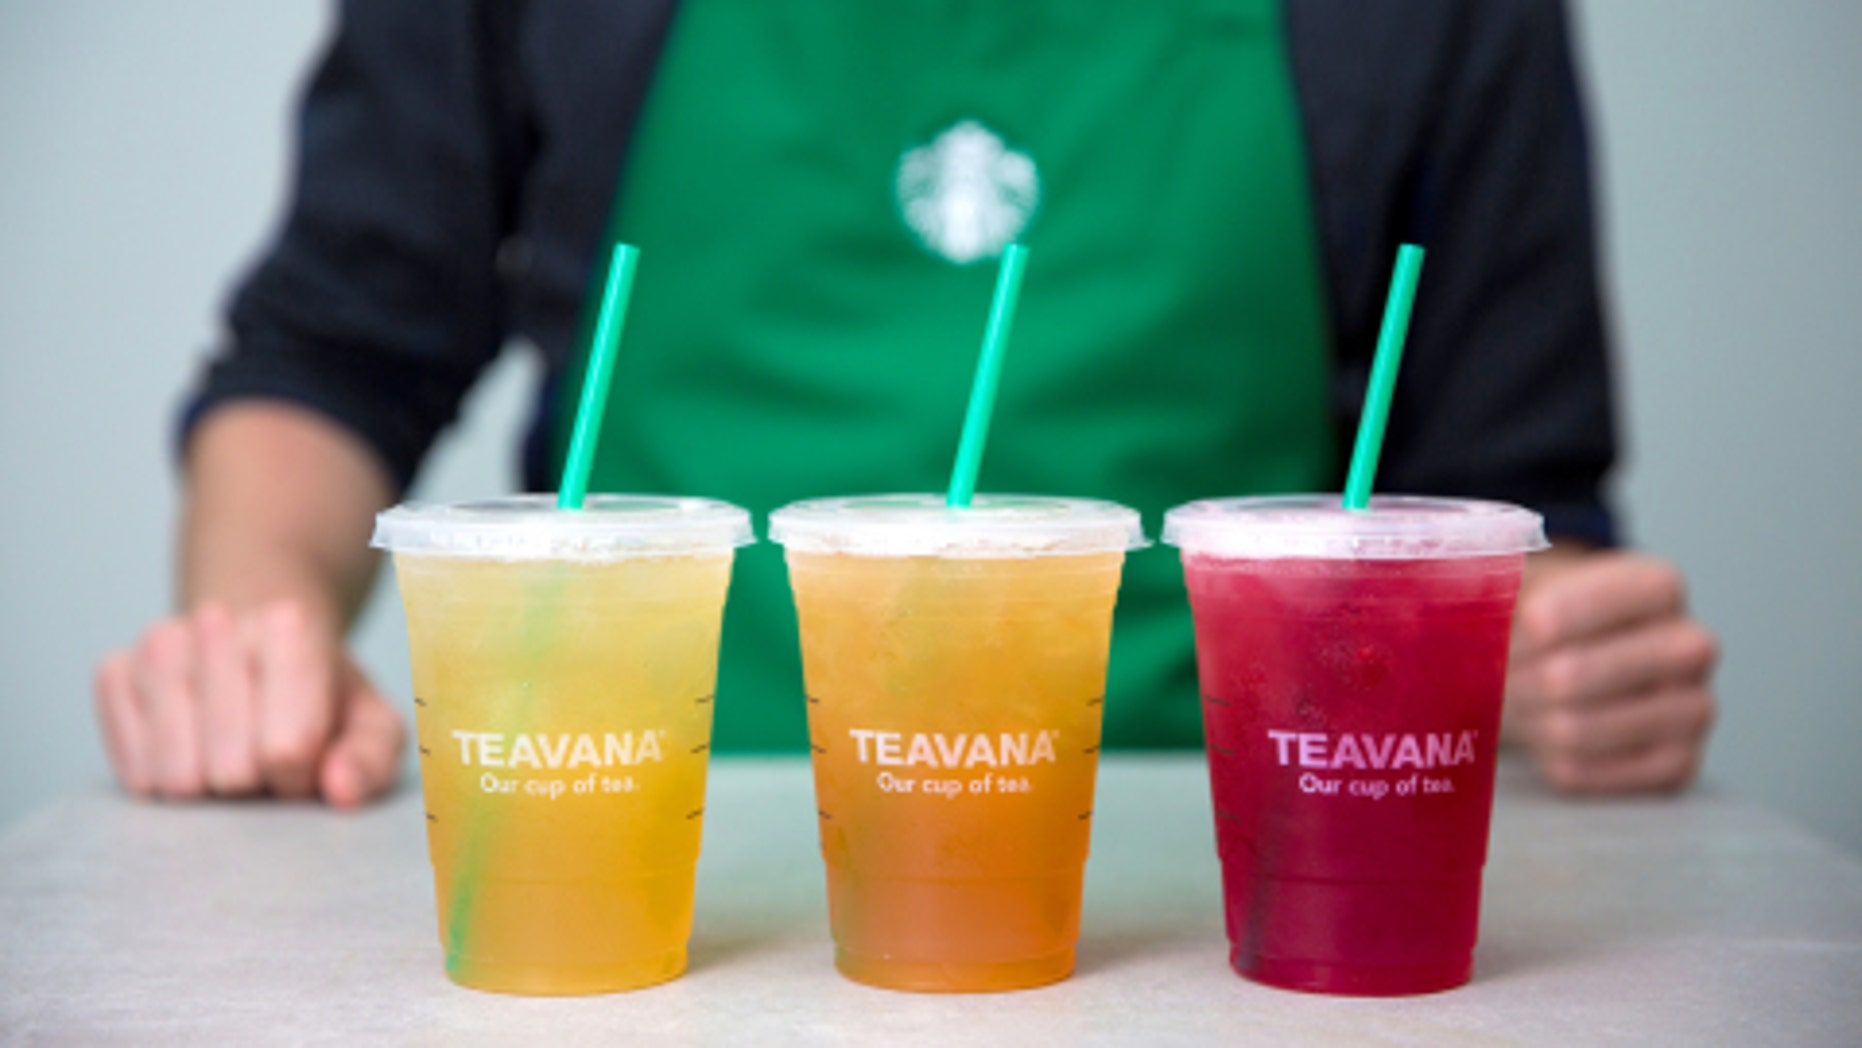 Starbucks will released the new teas with Anheuser-Busch in 2017.